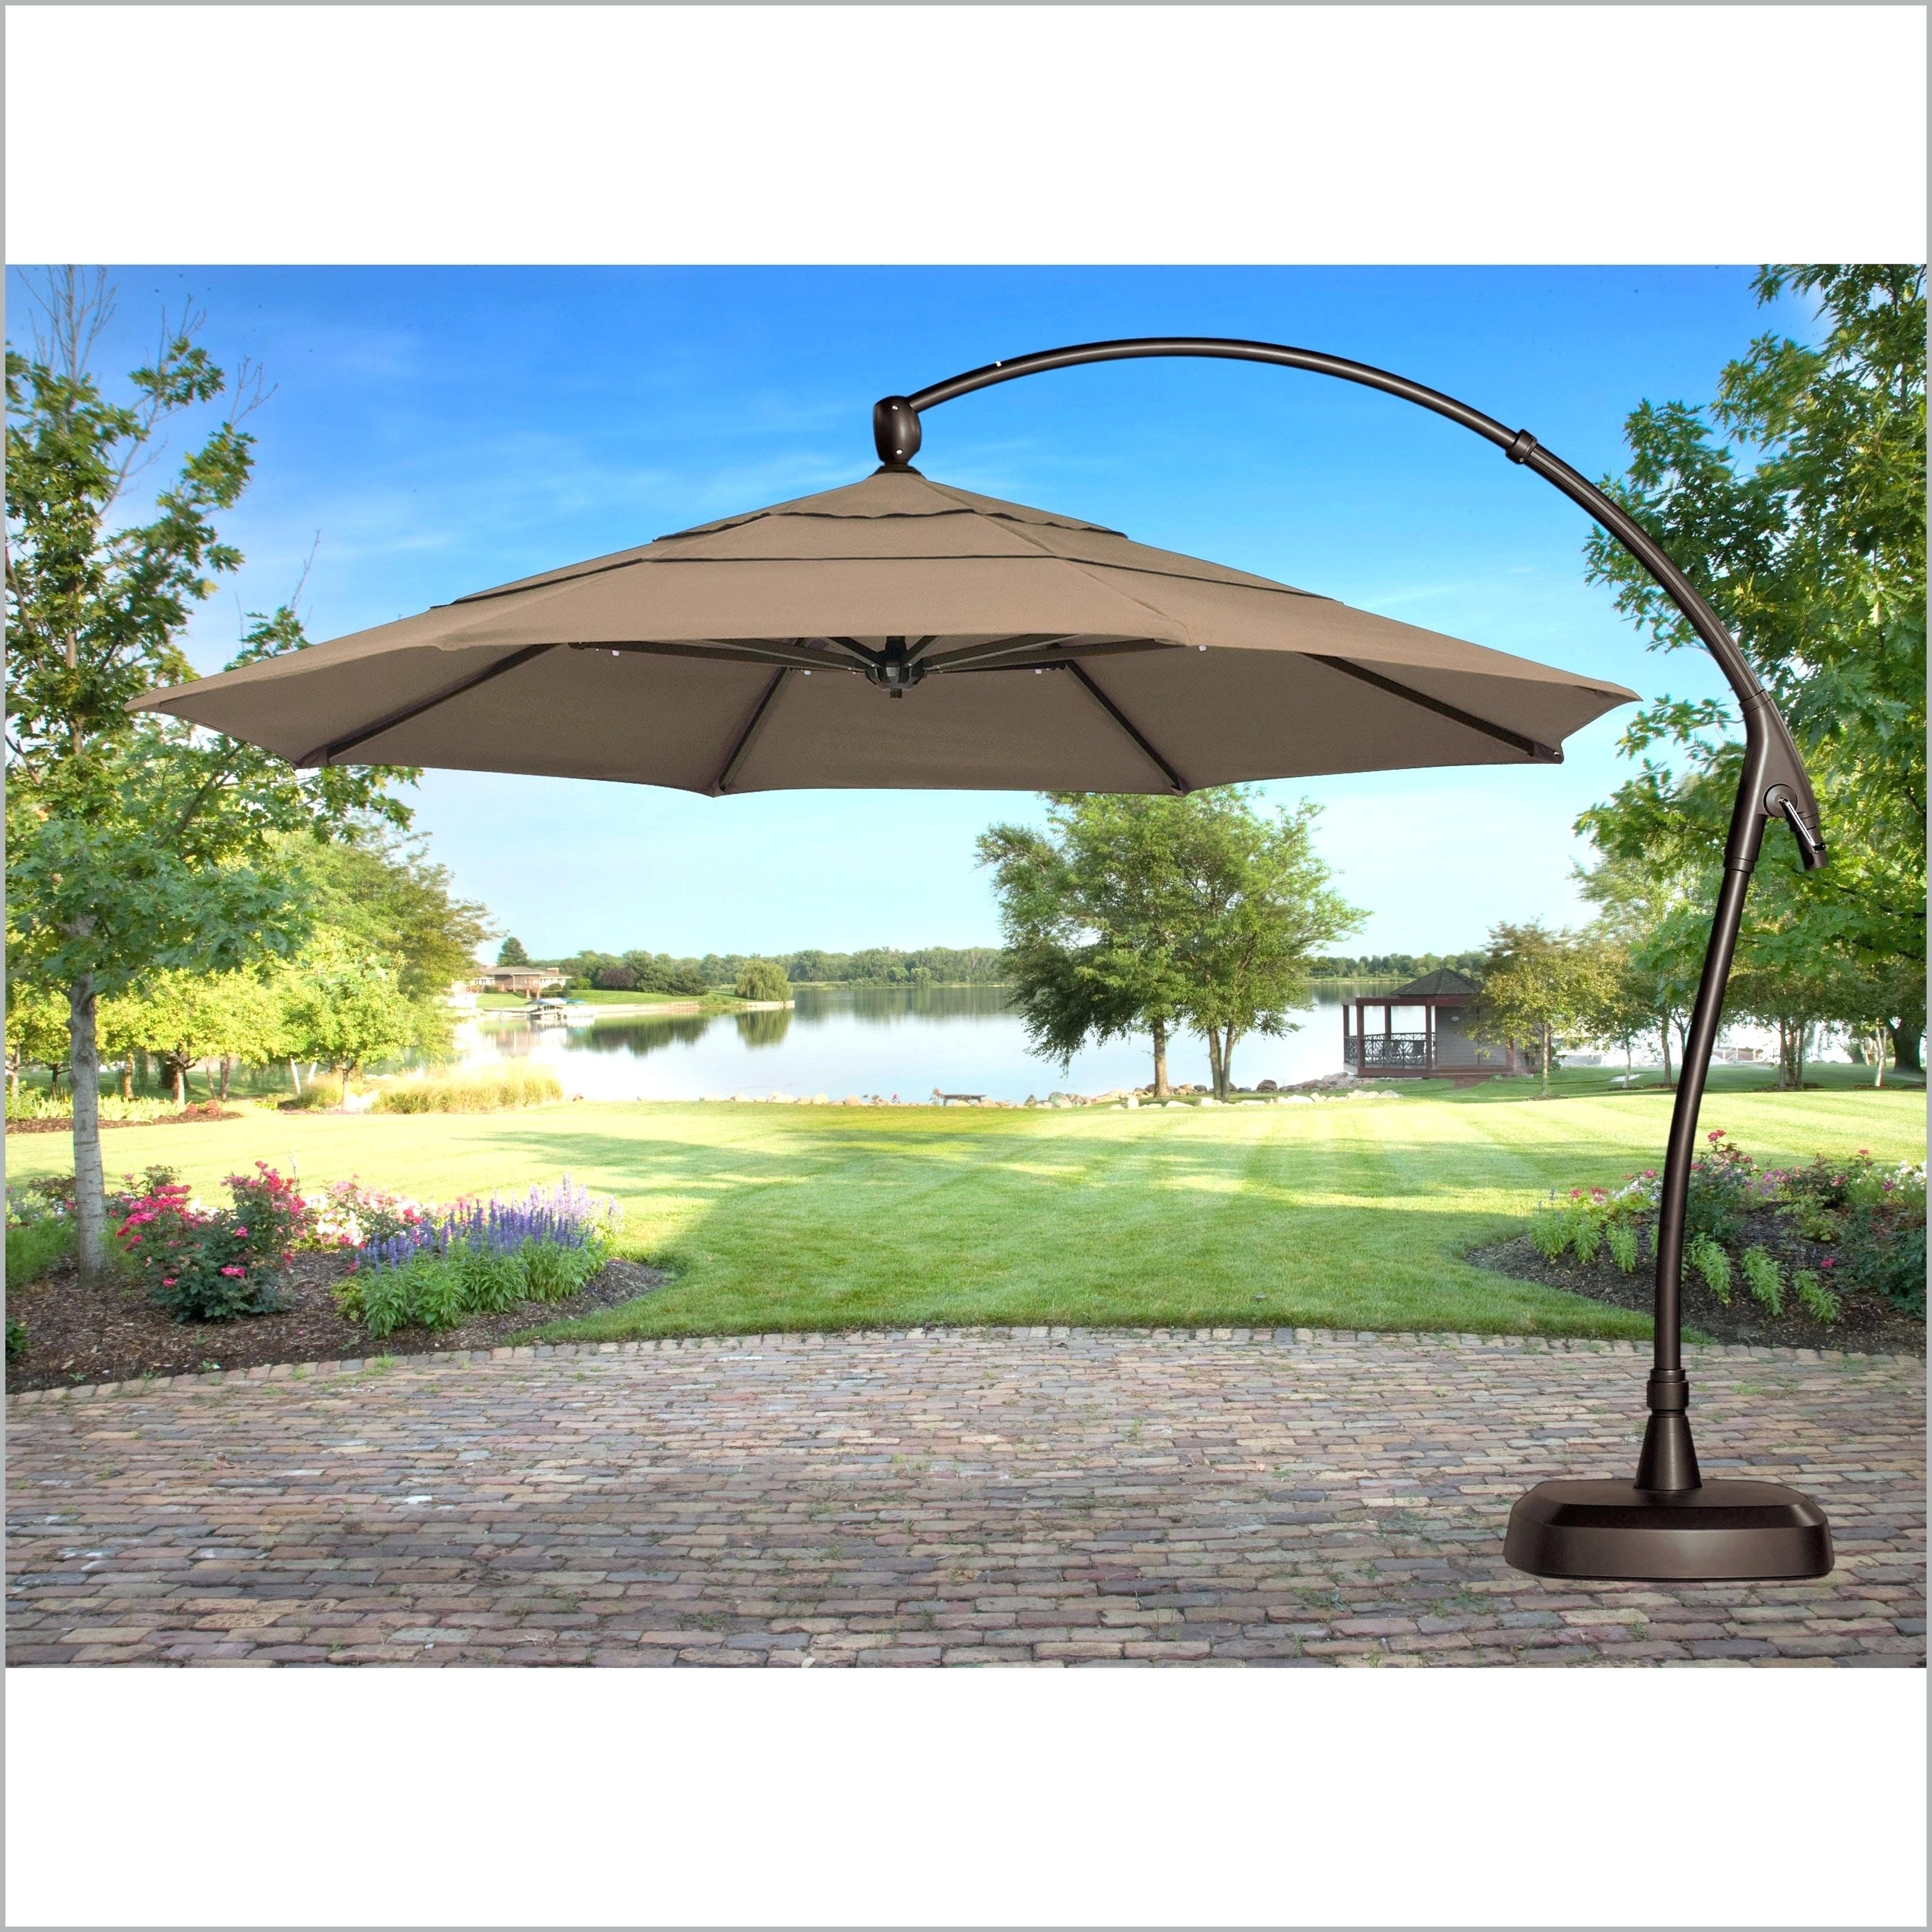 Lowes Patio Umbrellas Within 2018 Lowes Umbrella Base Patio Umbrellas With Lights Table Pics – Mrze (View 11 of 20)